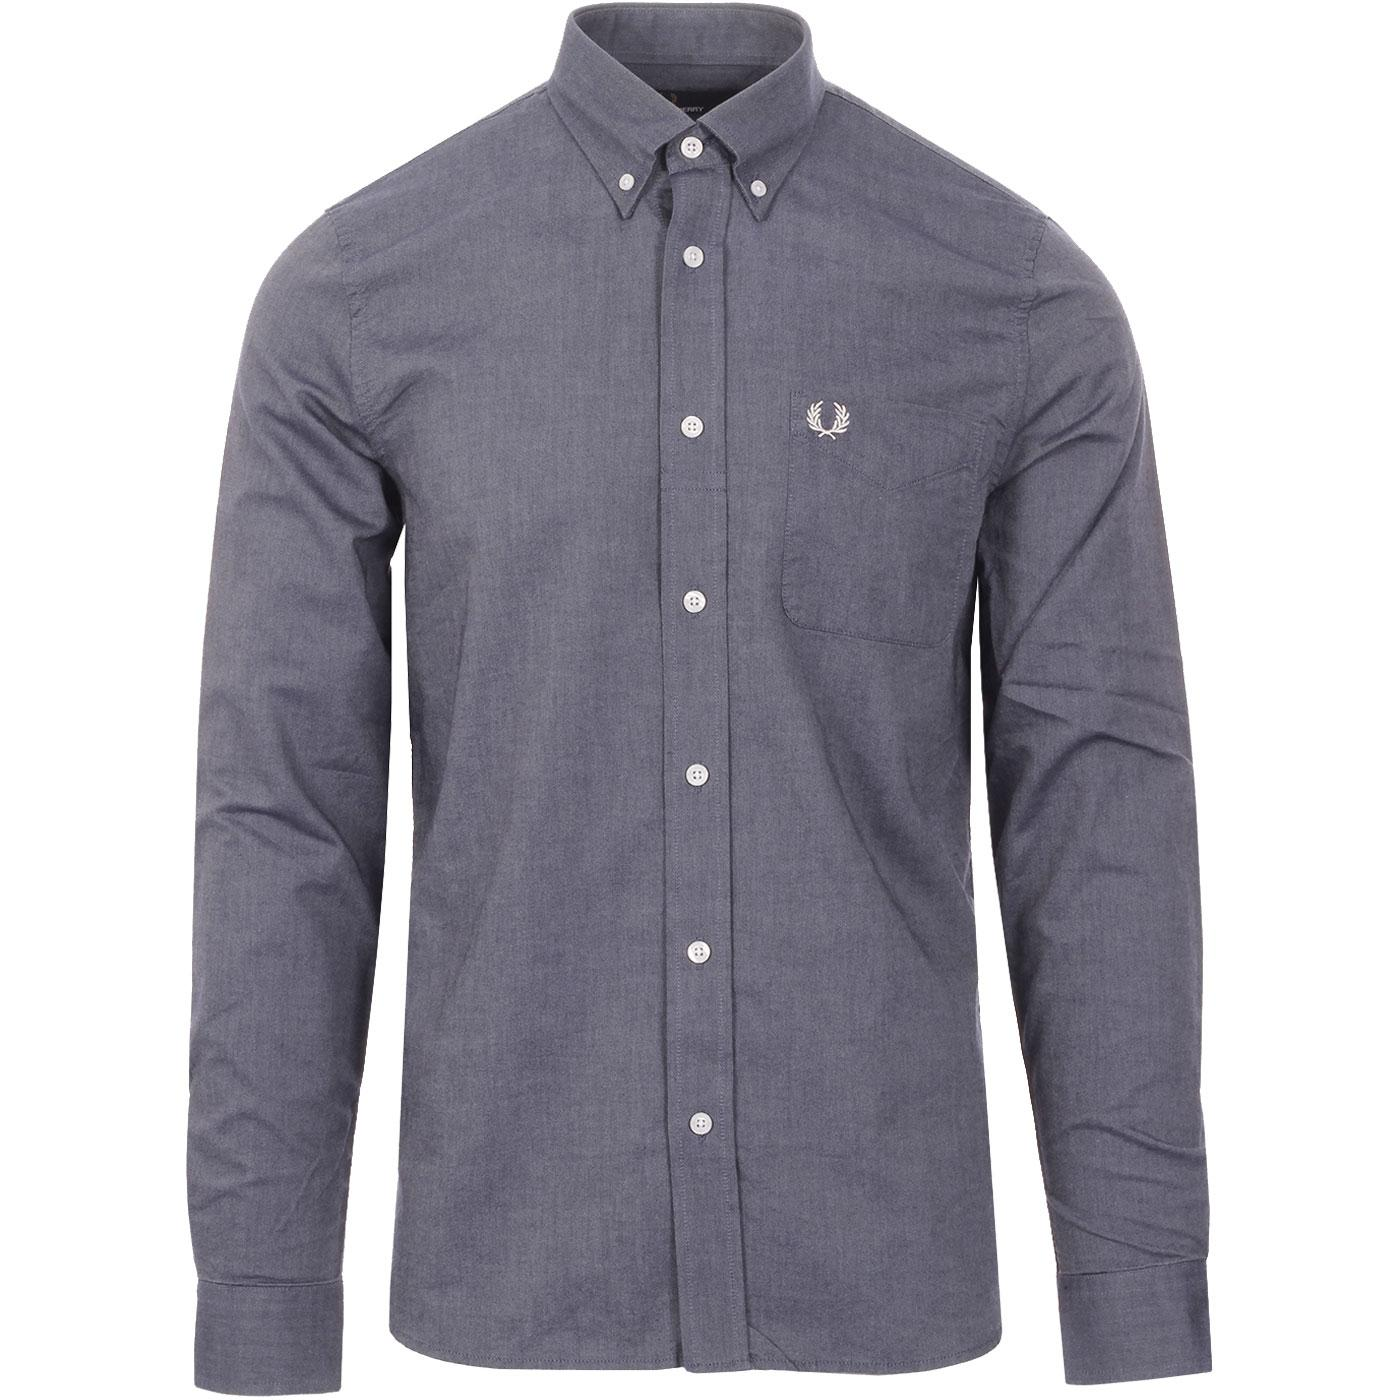 FRED PERRY Classic Mod Button Down Oxford Shirt DC